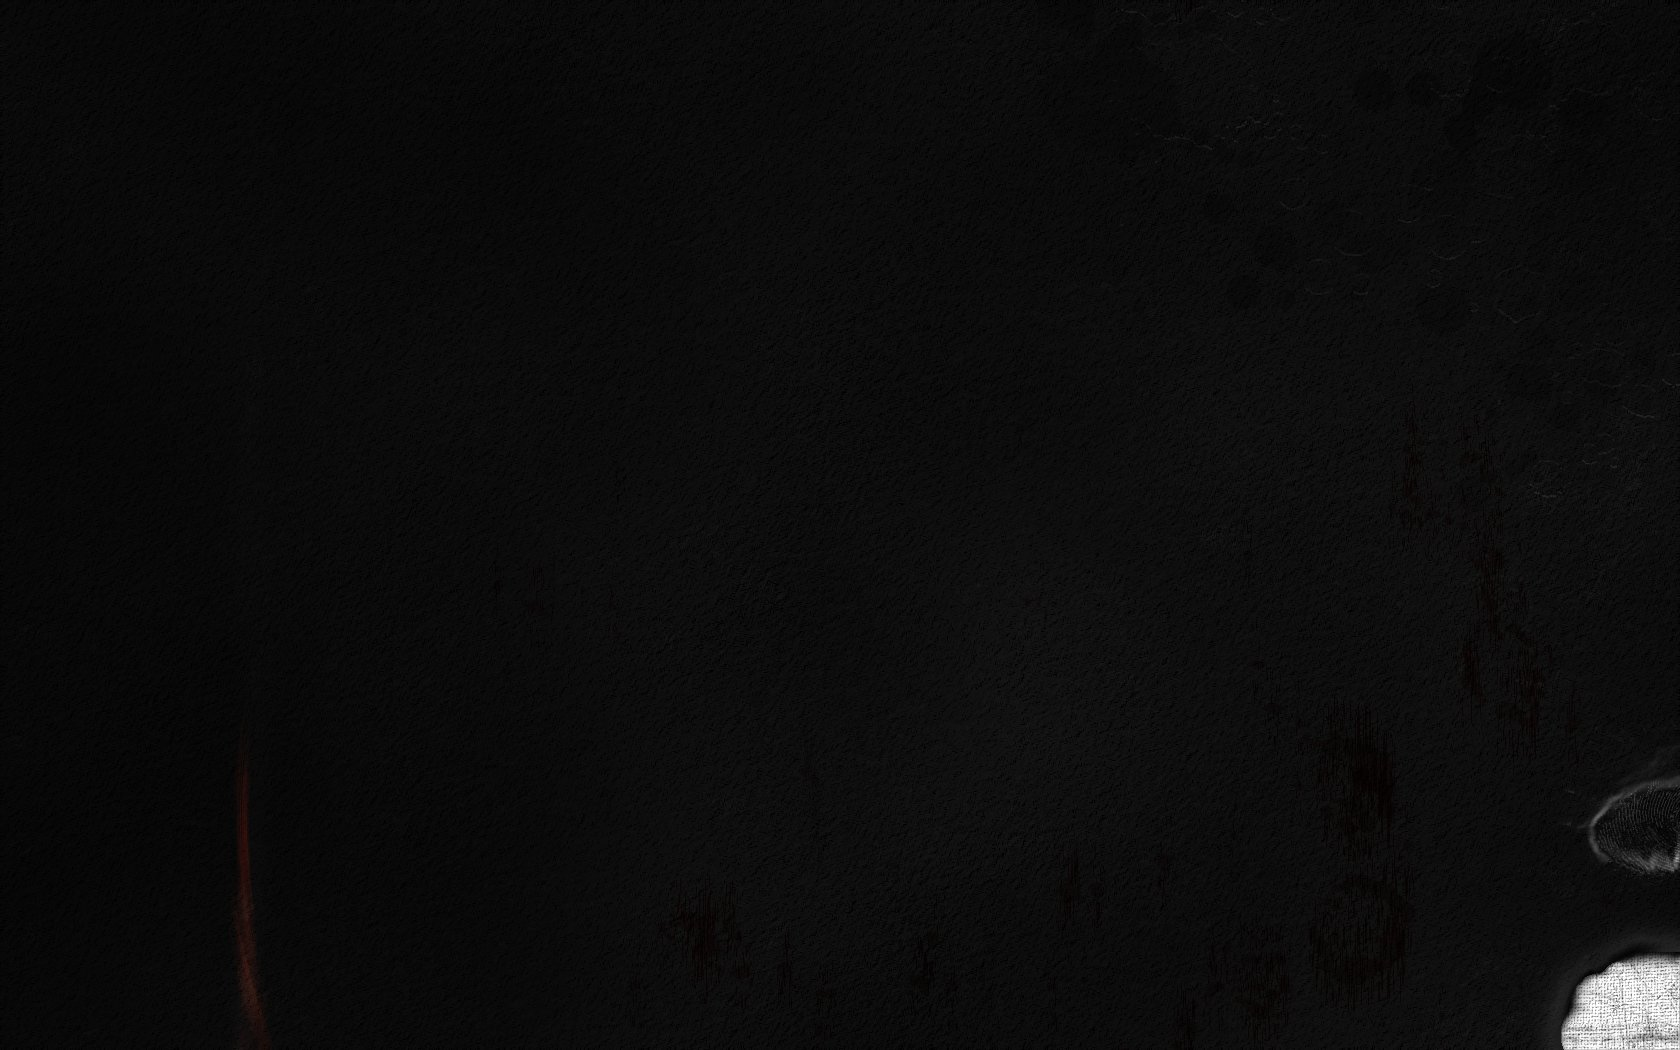 Black Grunge Wallpaper Grunge corner black by 10r 1680x1050